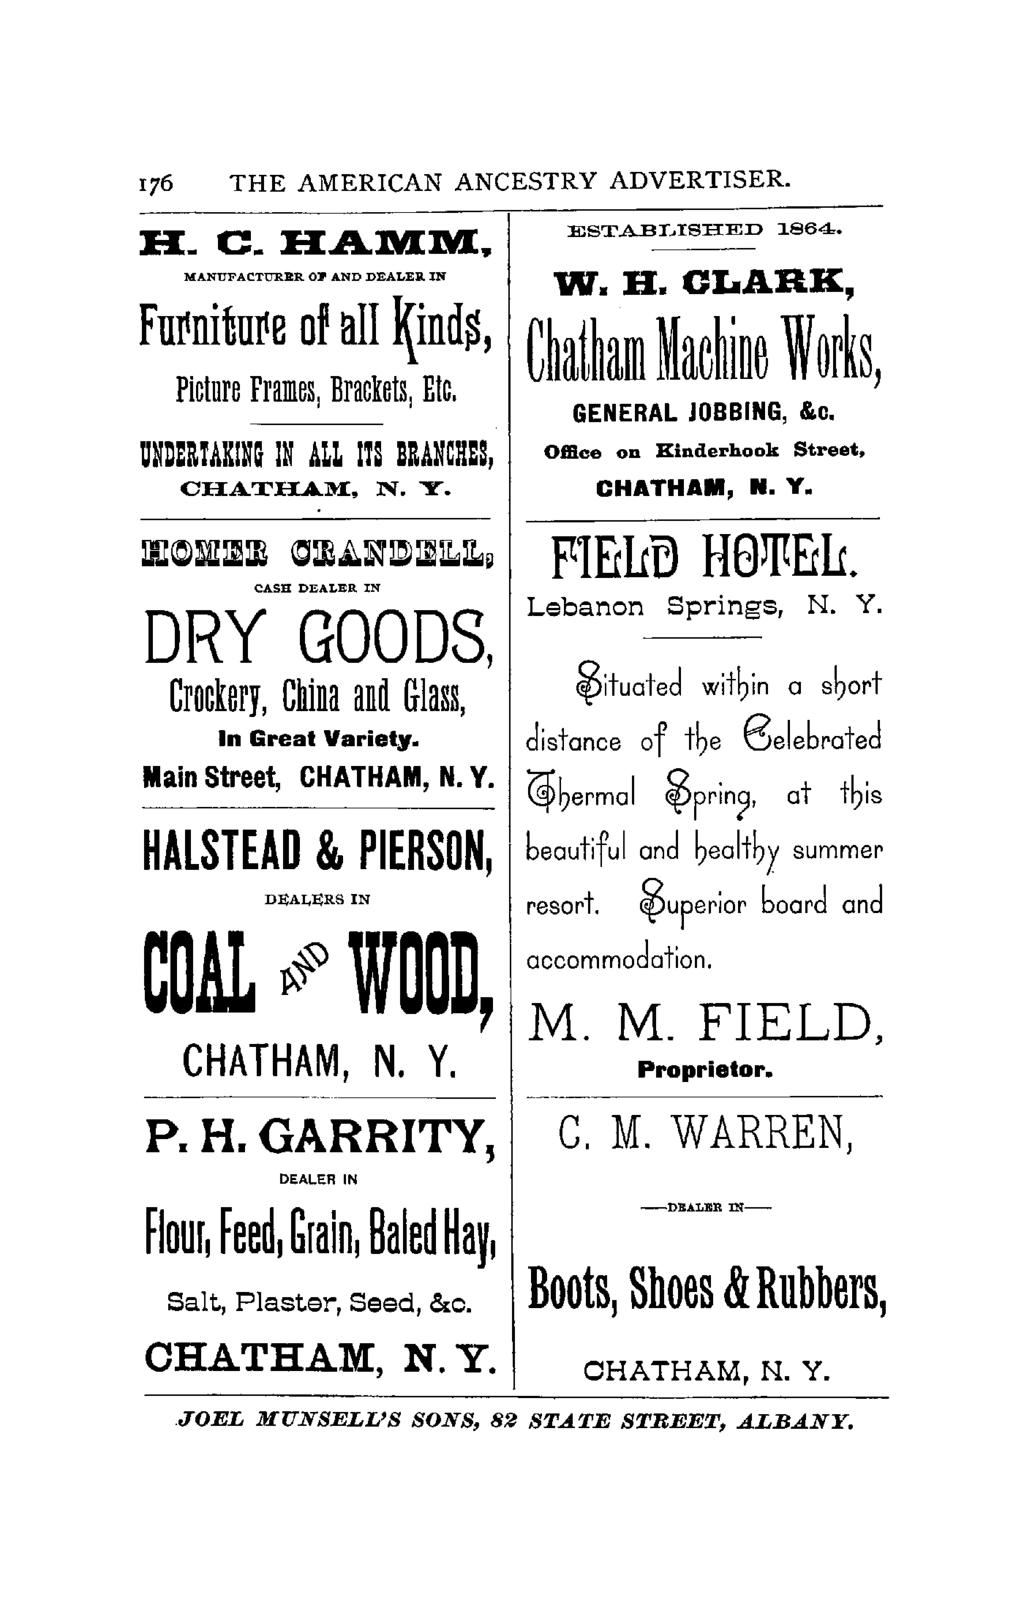 176 THE AMERICAN ANCESTRY ADVERTISER. H. C.HAMM, MANUFACTURER 011' AND DEALER IN Fn~nitn~e of all ~ind~, Picture Frames, Brackets, Etc. UNDERTAKING IN ALL ITS BRANCHES, ESTABI,ISHED 1864. w. R.